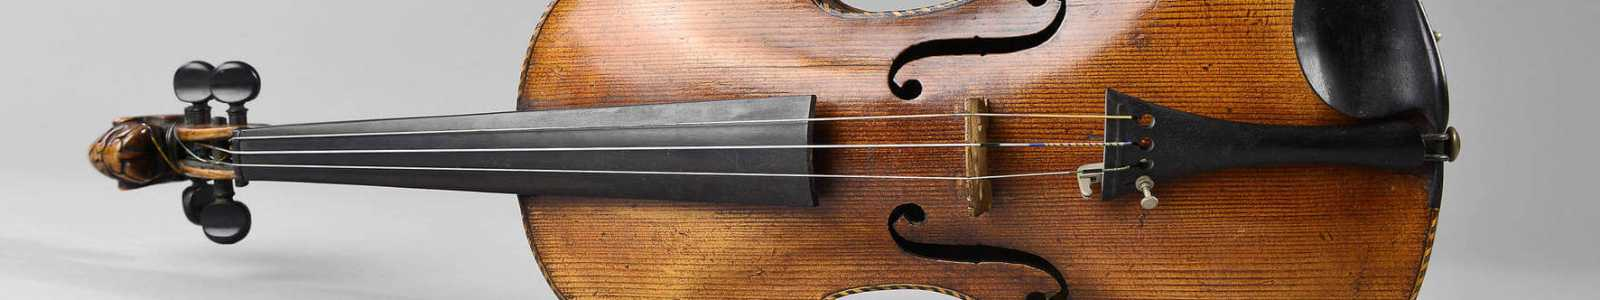 Art and Antiques, collection of historic musical instruments